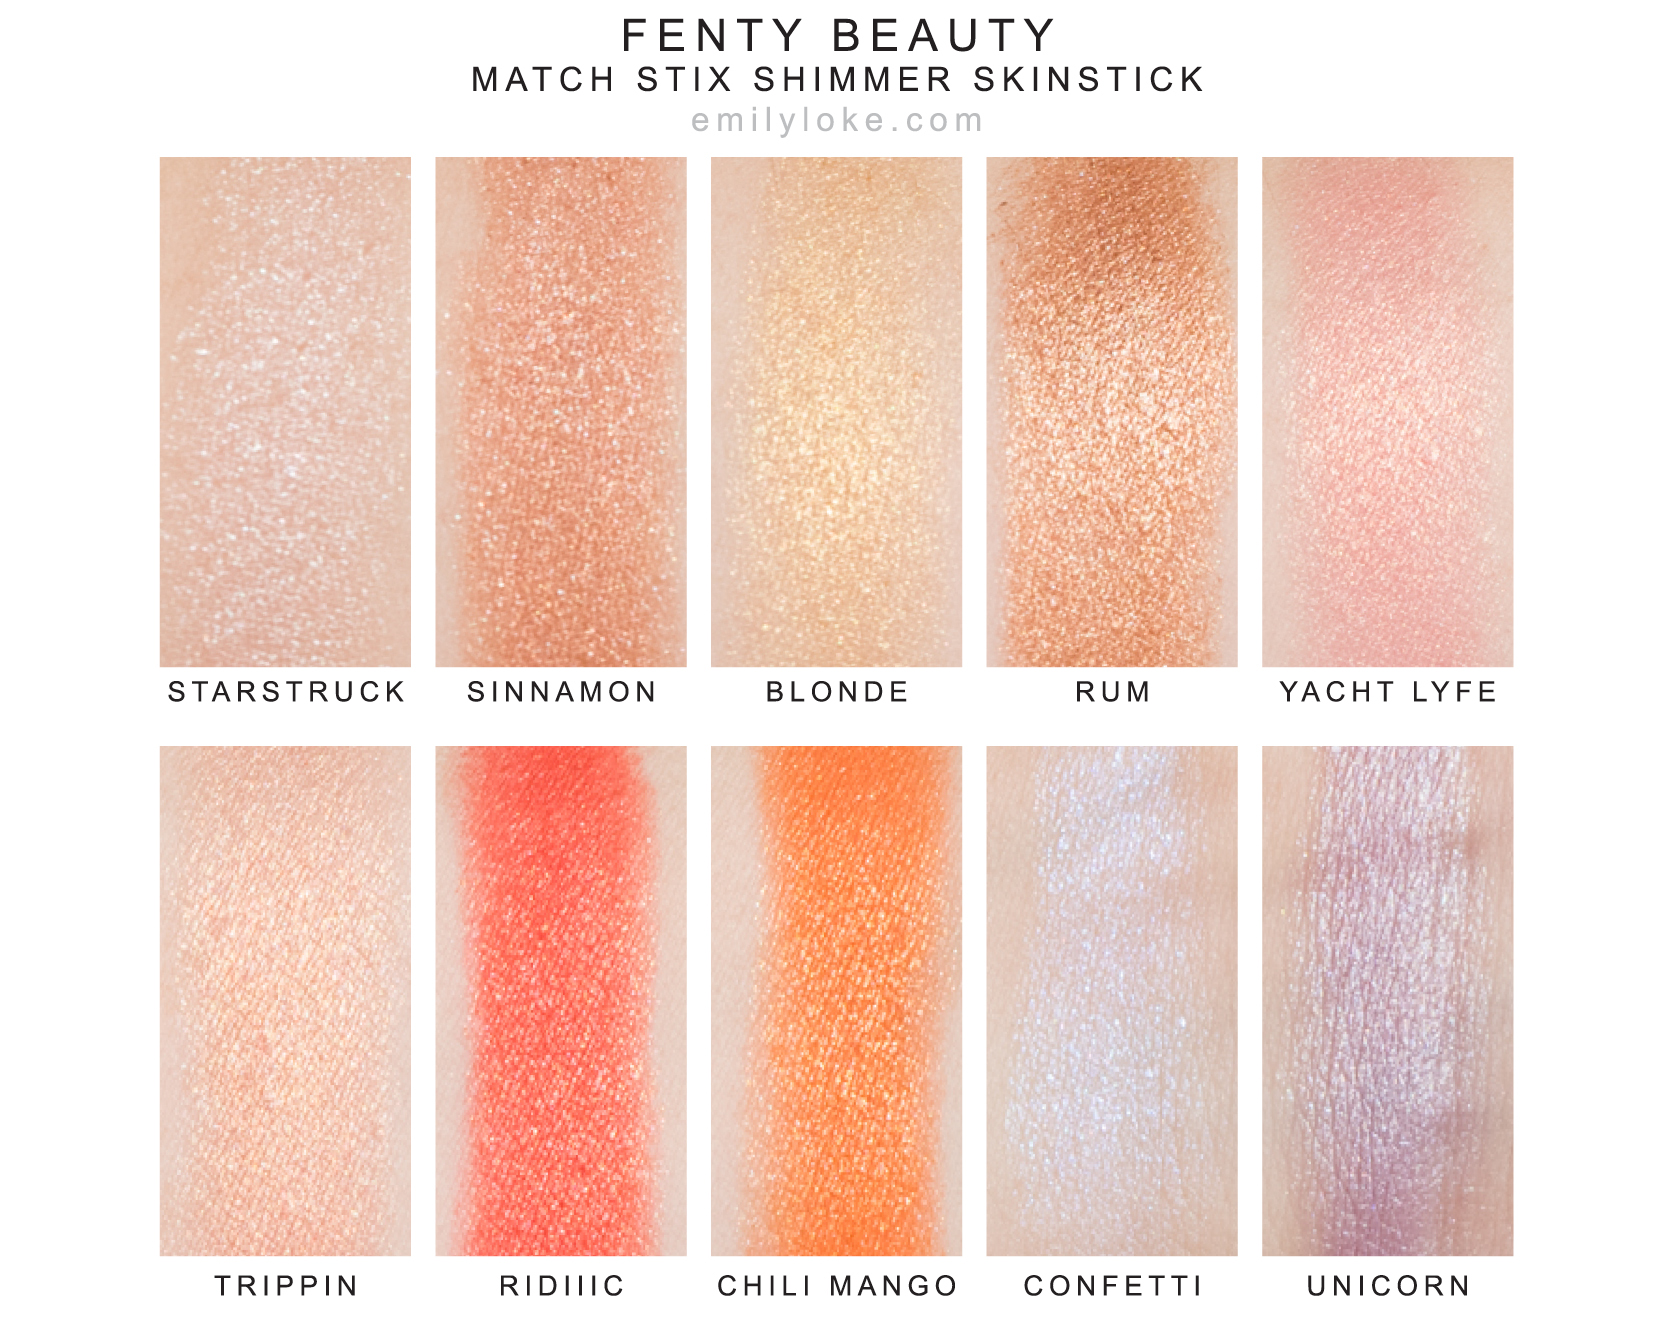 fenty beauty match stix shimmer skinstick highlighter swatches